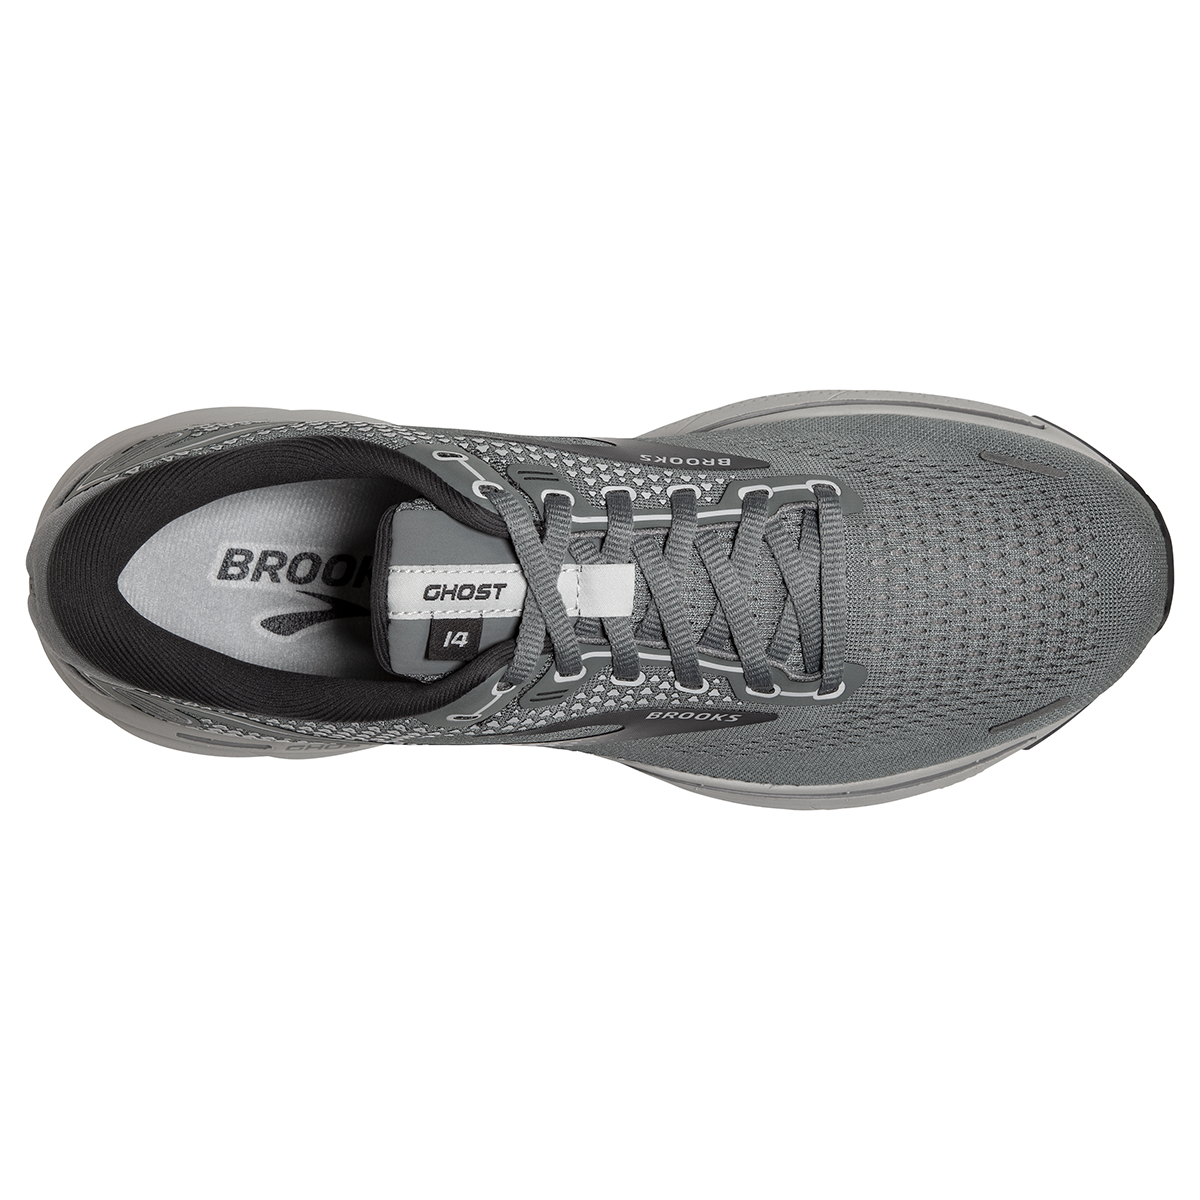 Men's Brooks Ghost 14 Running Shoe - Color: Grey/Alloy/Oyster - Size: 8 - Width: Extra Wide, Grey/Alloy/Oyster, large, image 3